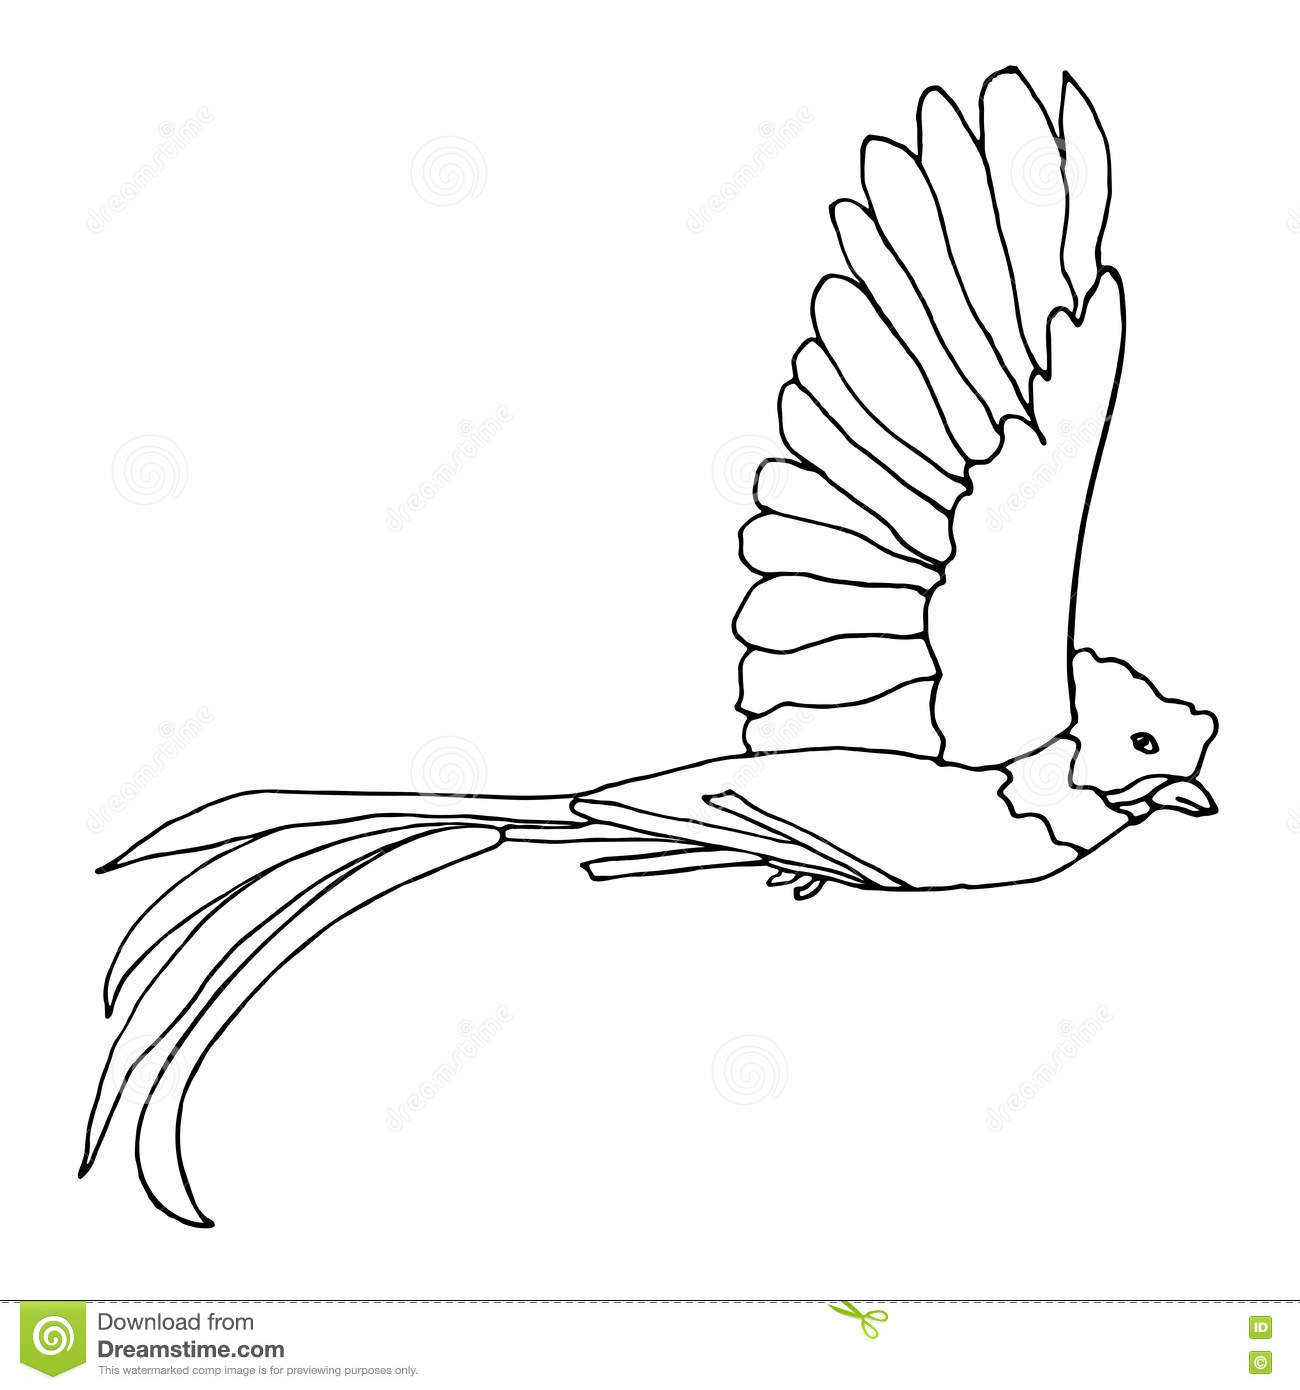 Guatemala Quetzal Bird Coloring Page Coloring Pages